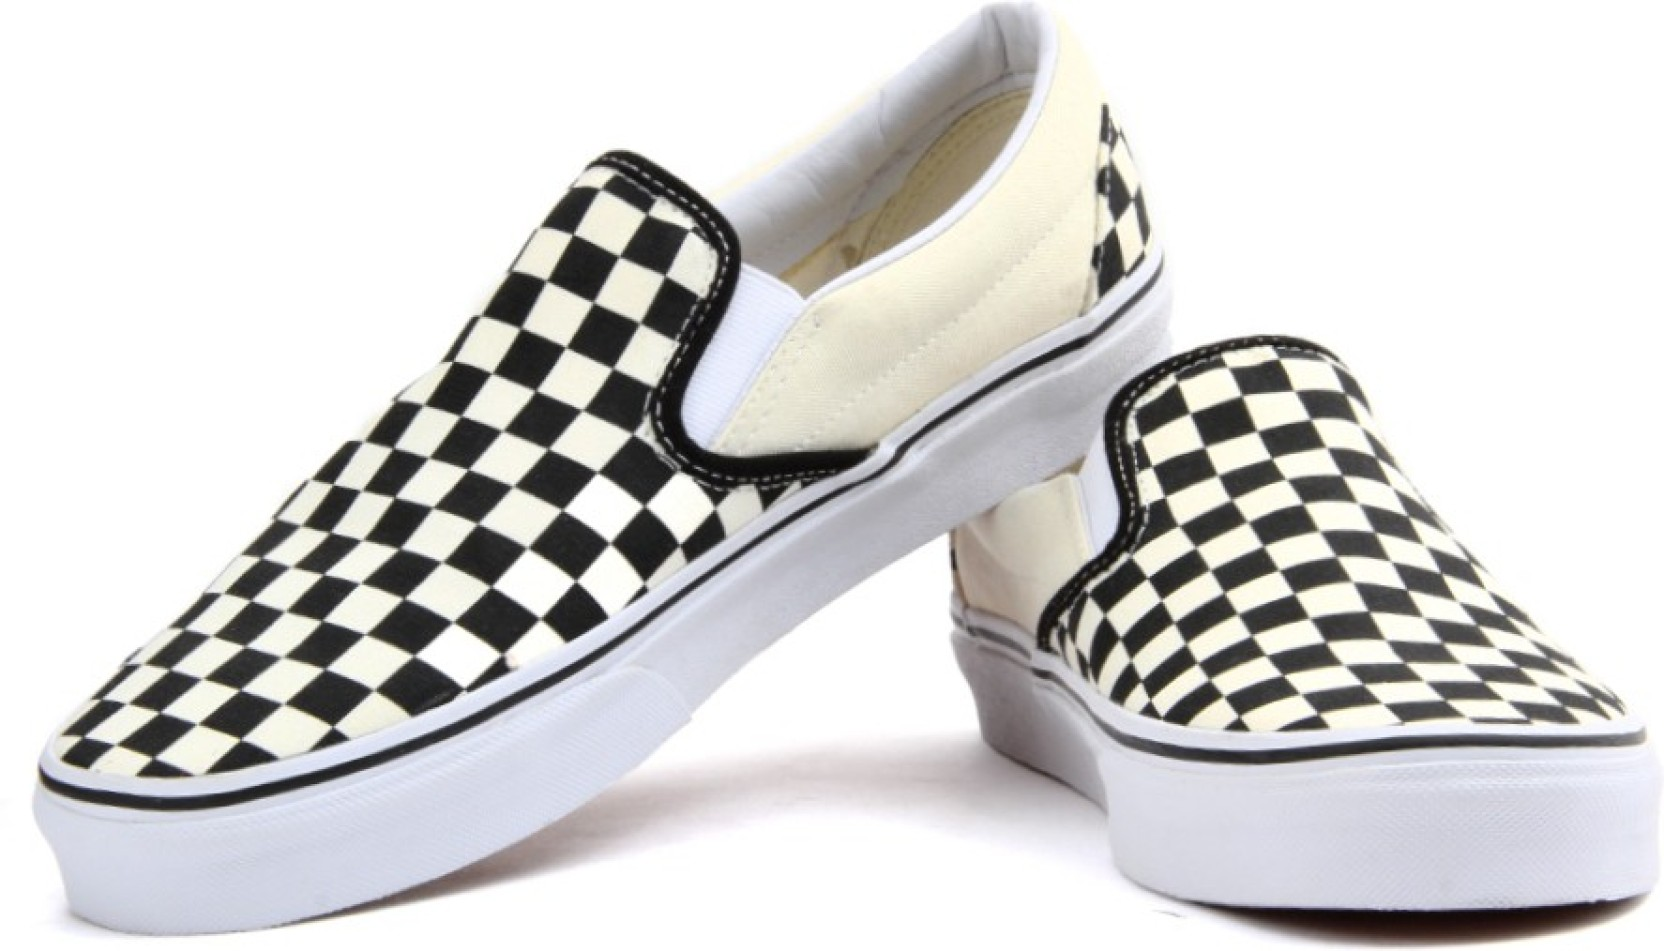 ade64c235235 Vans Classic Slip-On Canvas Shoes For Men - Buy Black And White ...